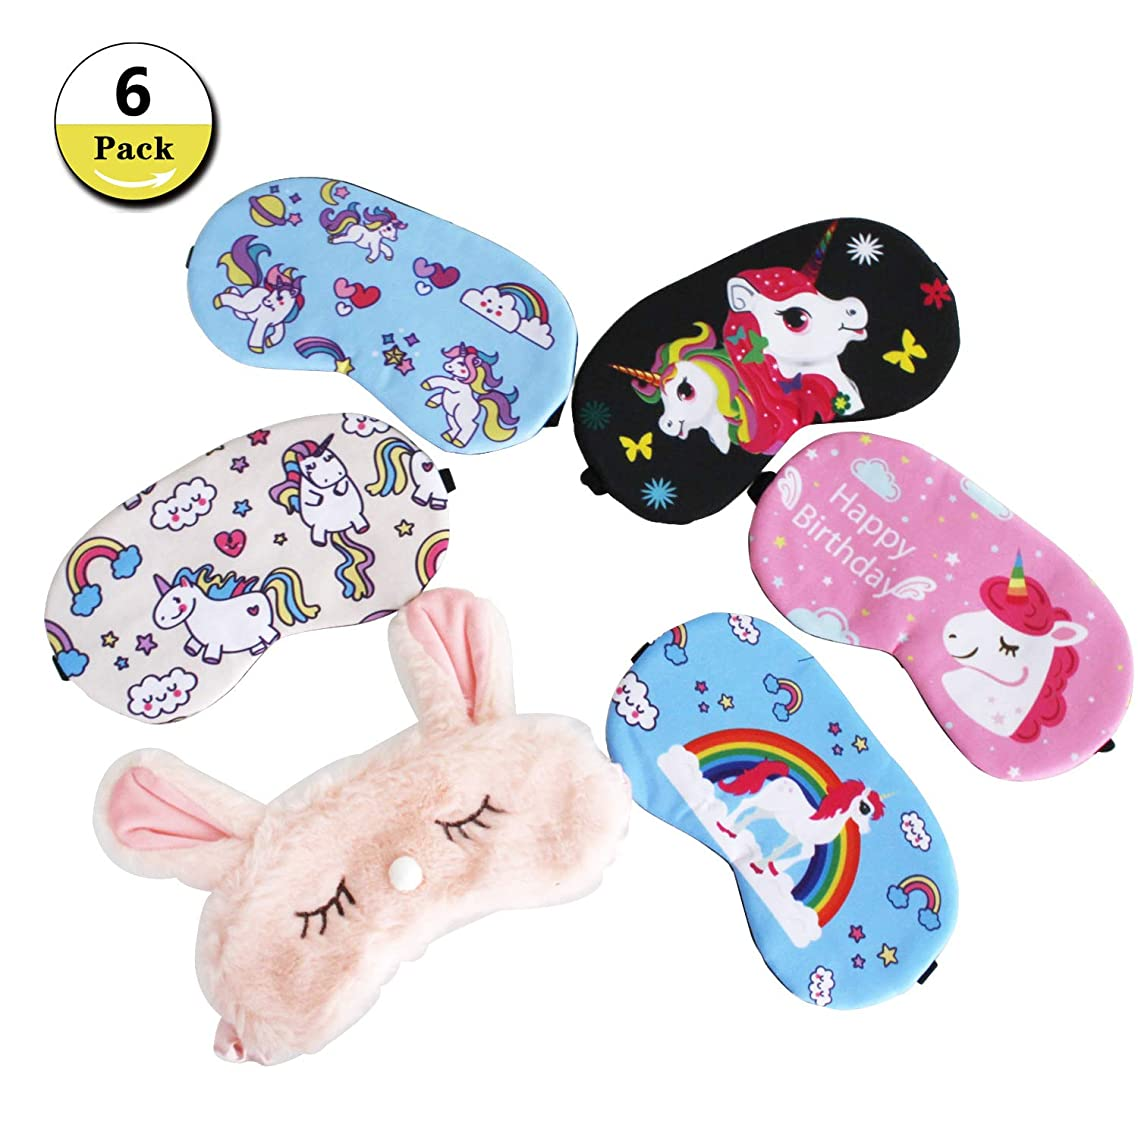 6 Pack Unicorn Sleep Eye Mask Cover Soft Blindfold Sleeping Mask for Kids Women Men